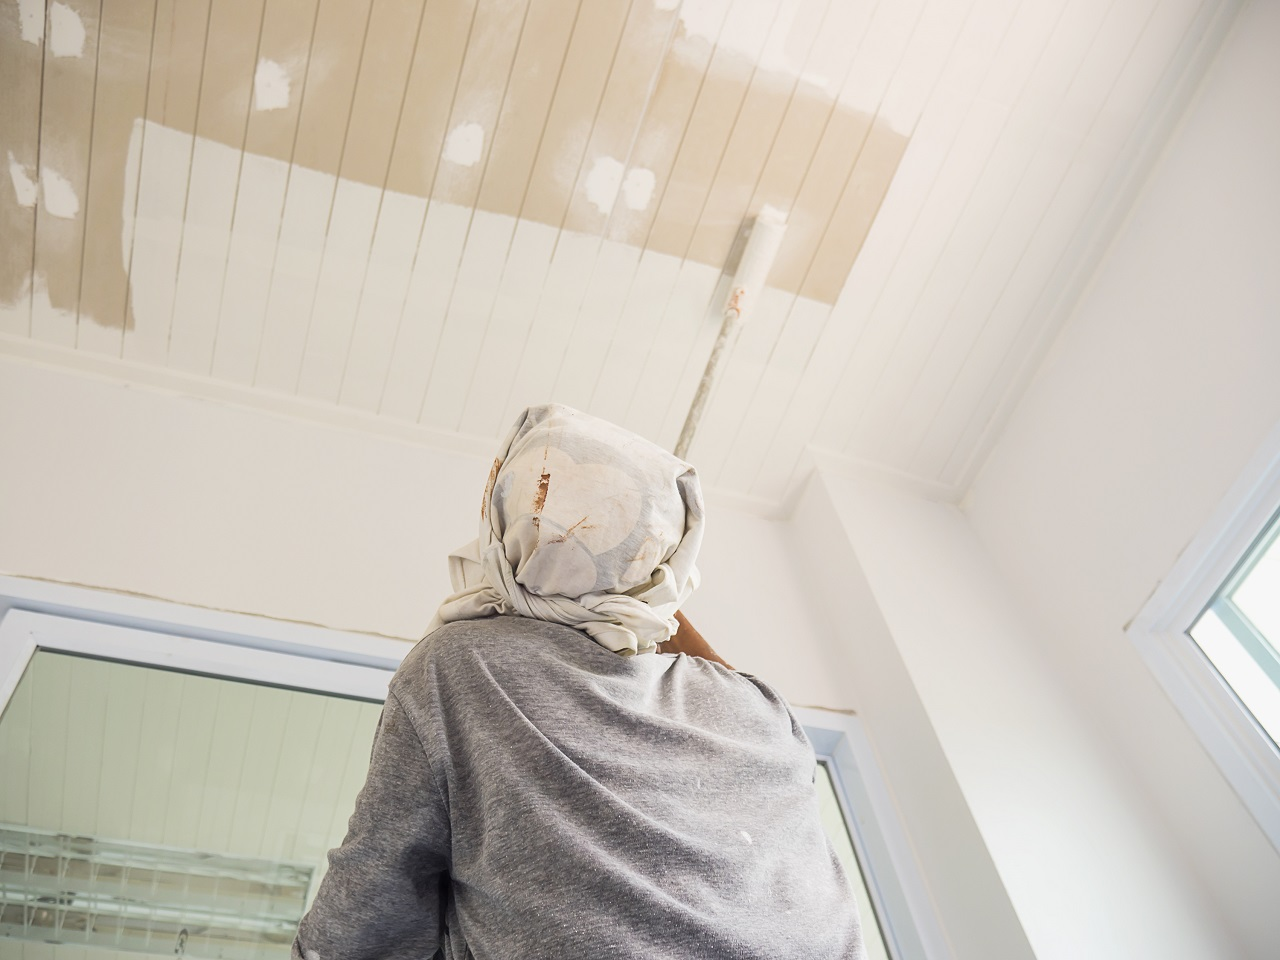 A man painting the ceiling with a long paint roller